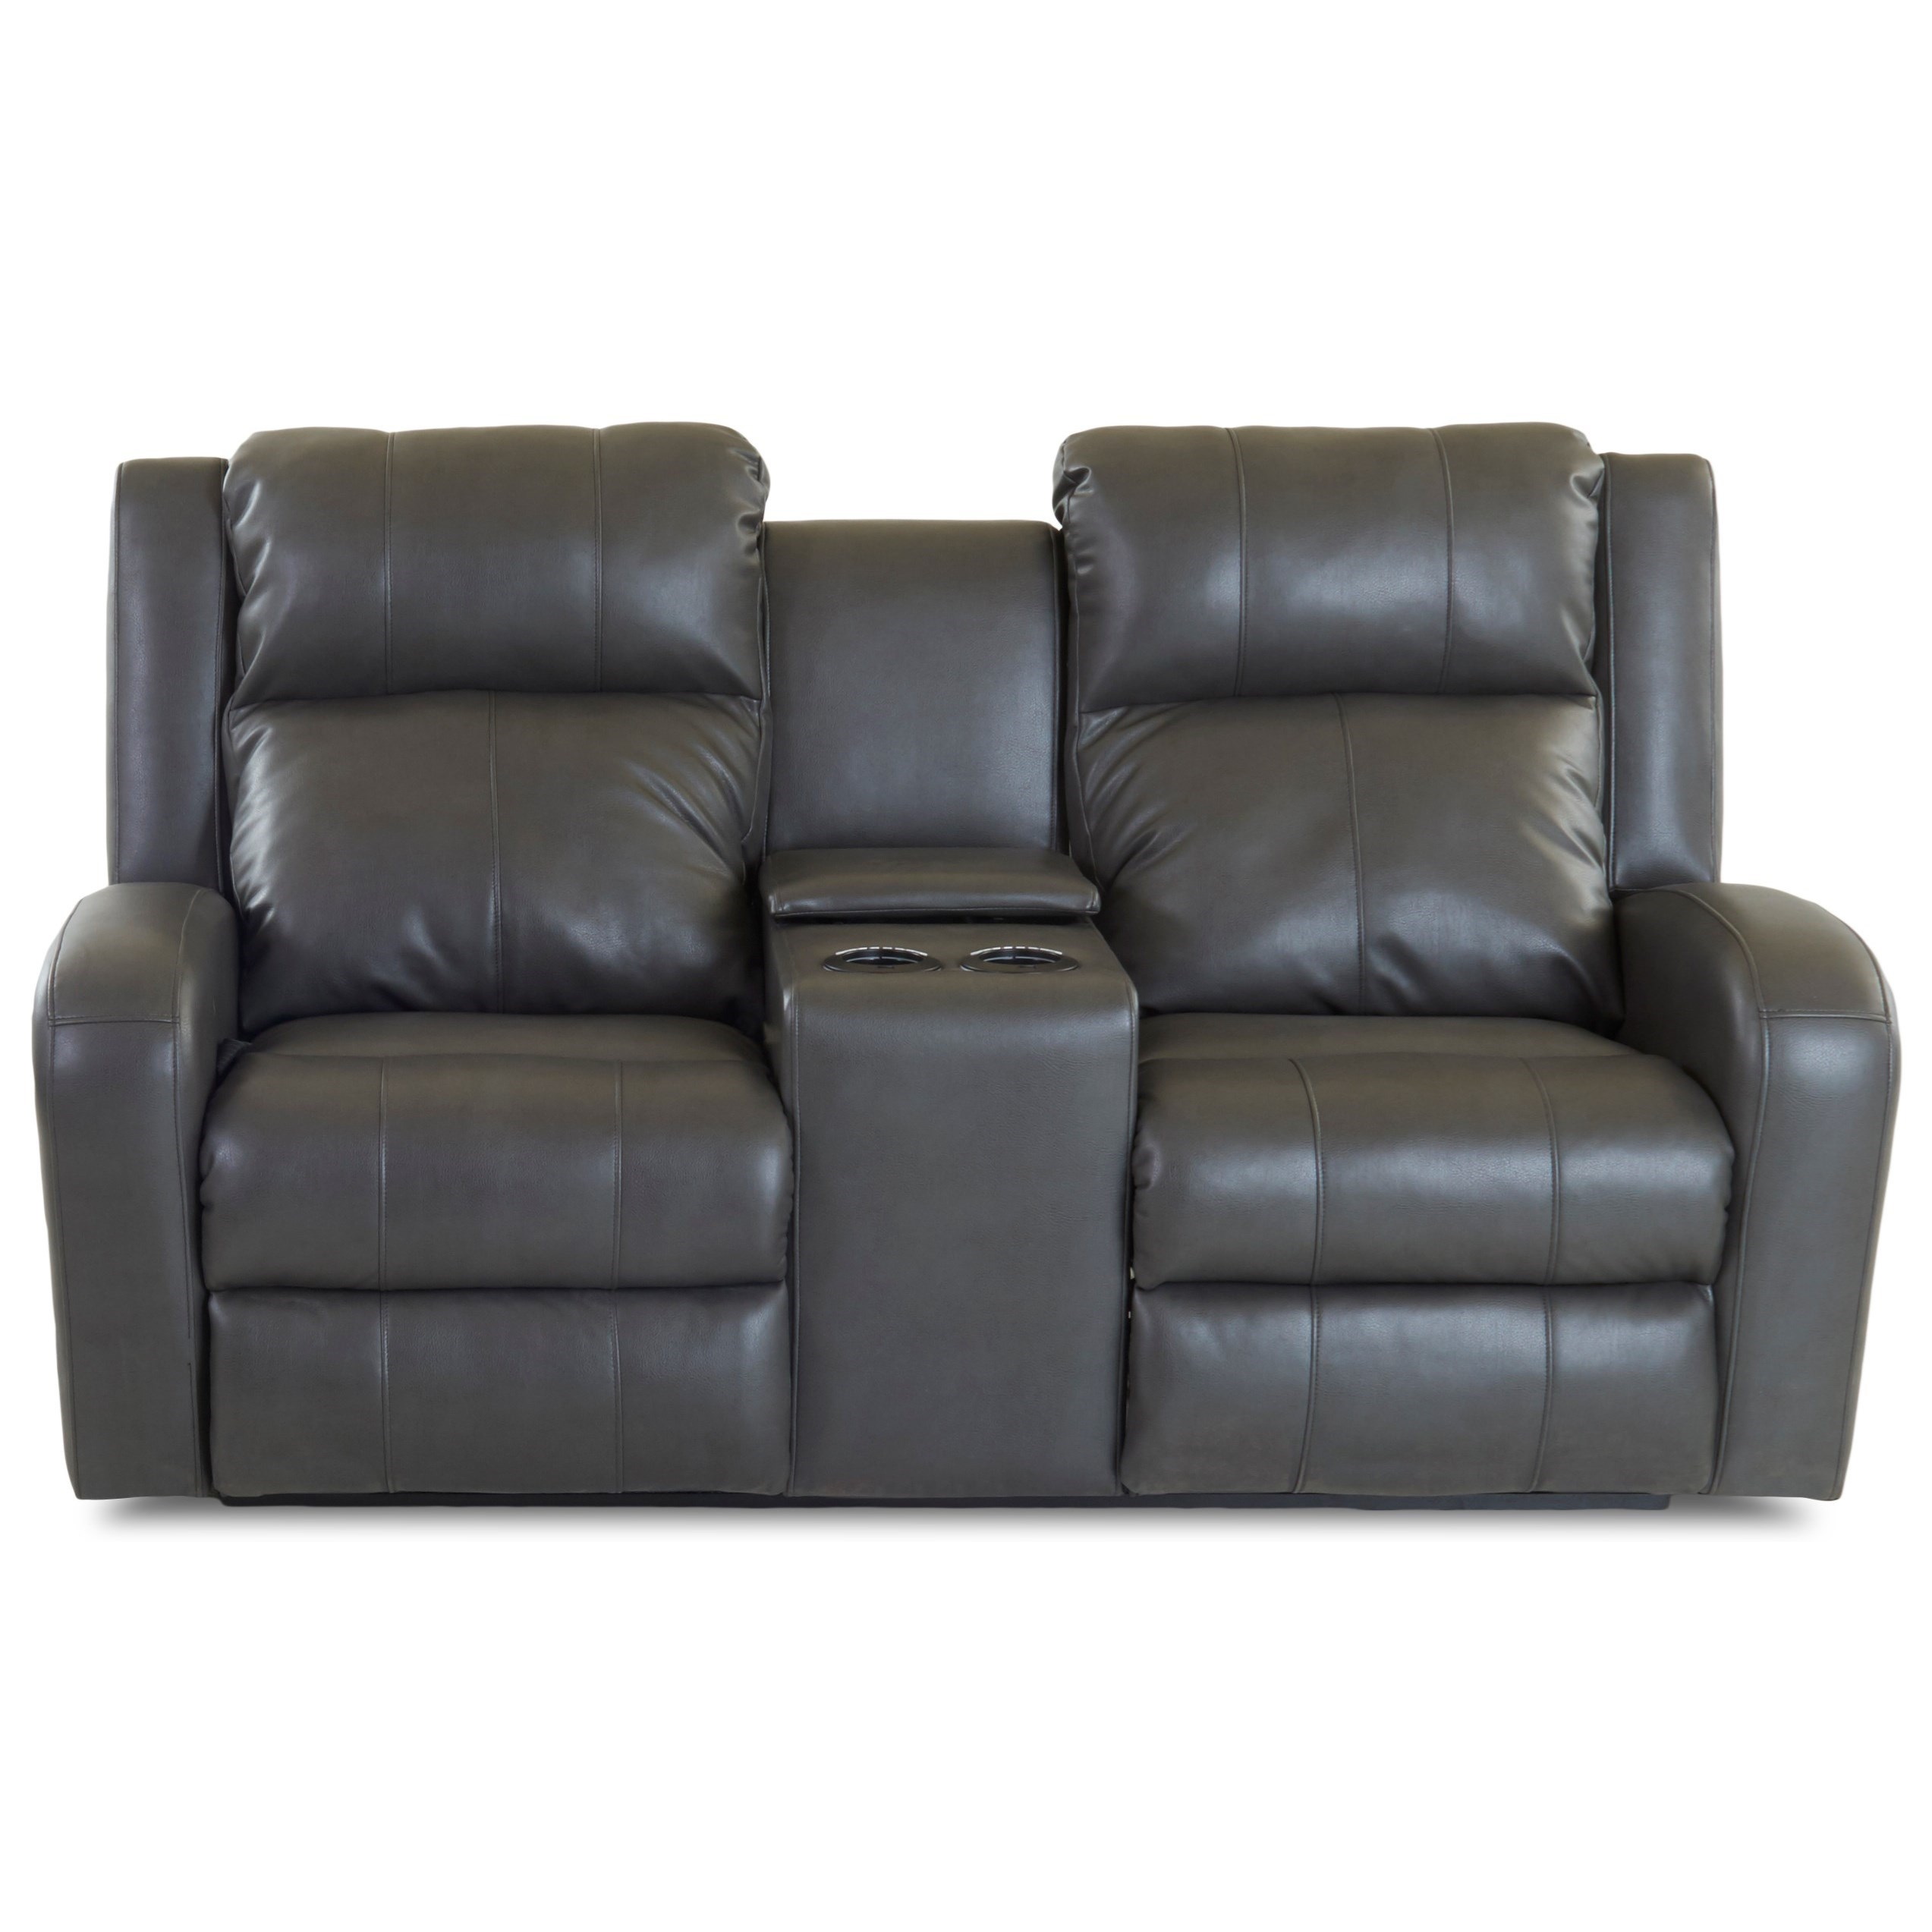 Enjoyable Casual Power Reclining Loveseat With Power Adjustable Ibusinesslaw Wood Chair Design Ideas Ibusinesslaworg